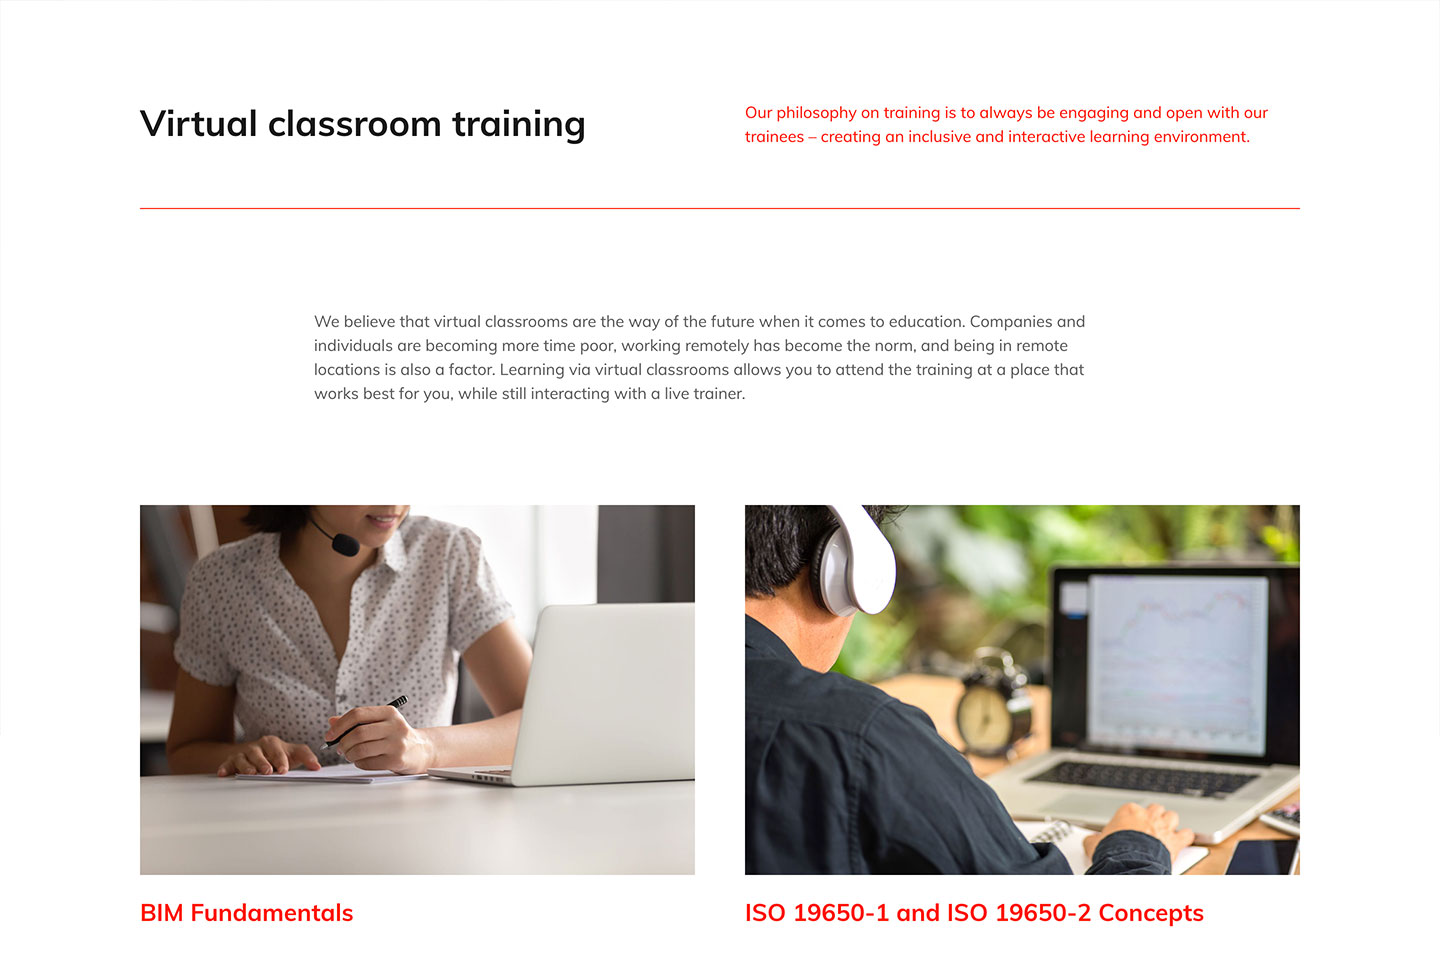 Digital Node: Virtual classroom training